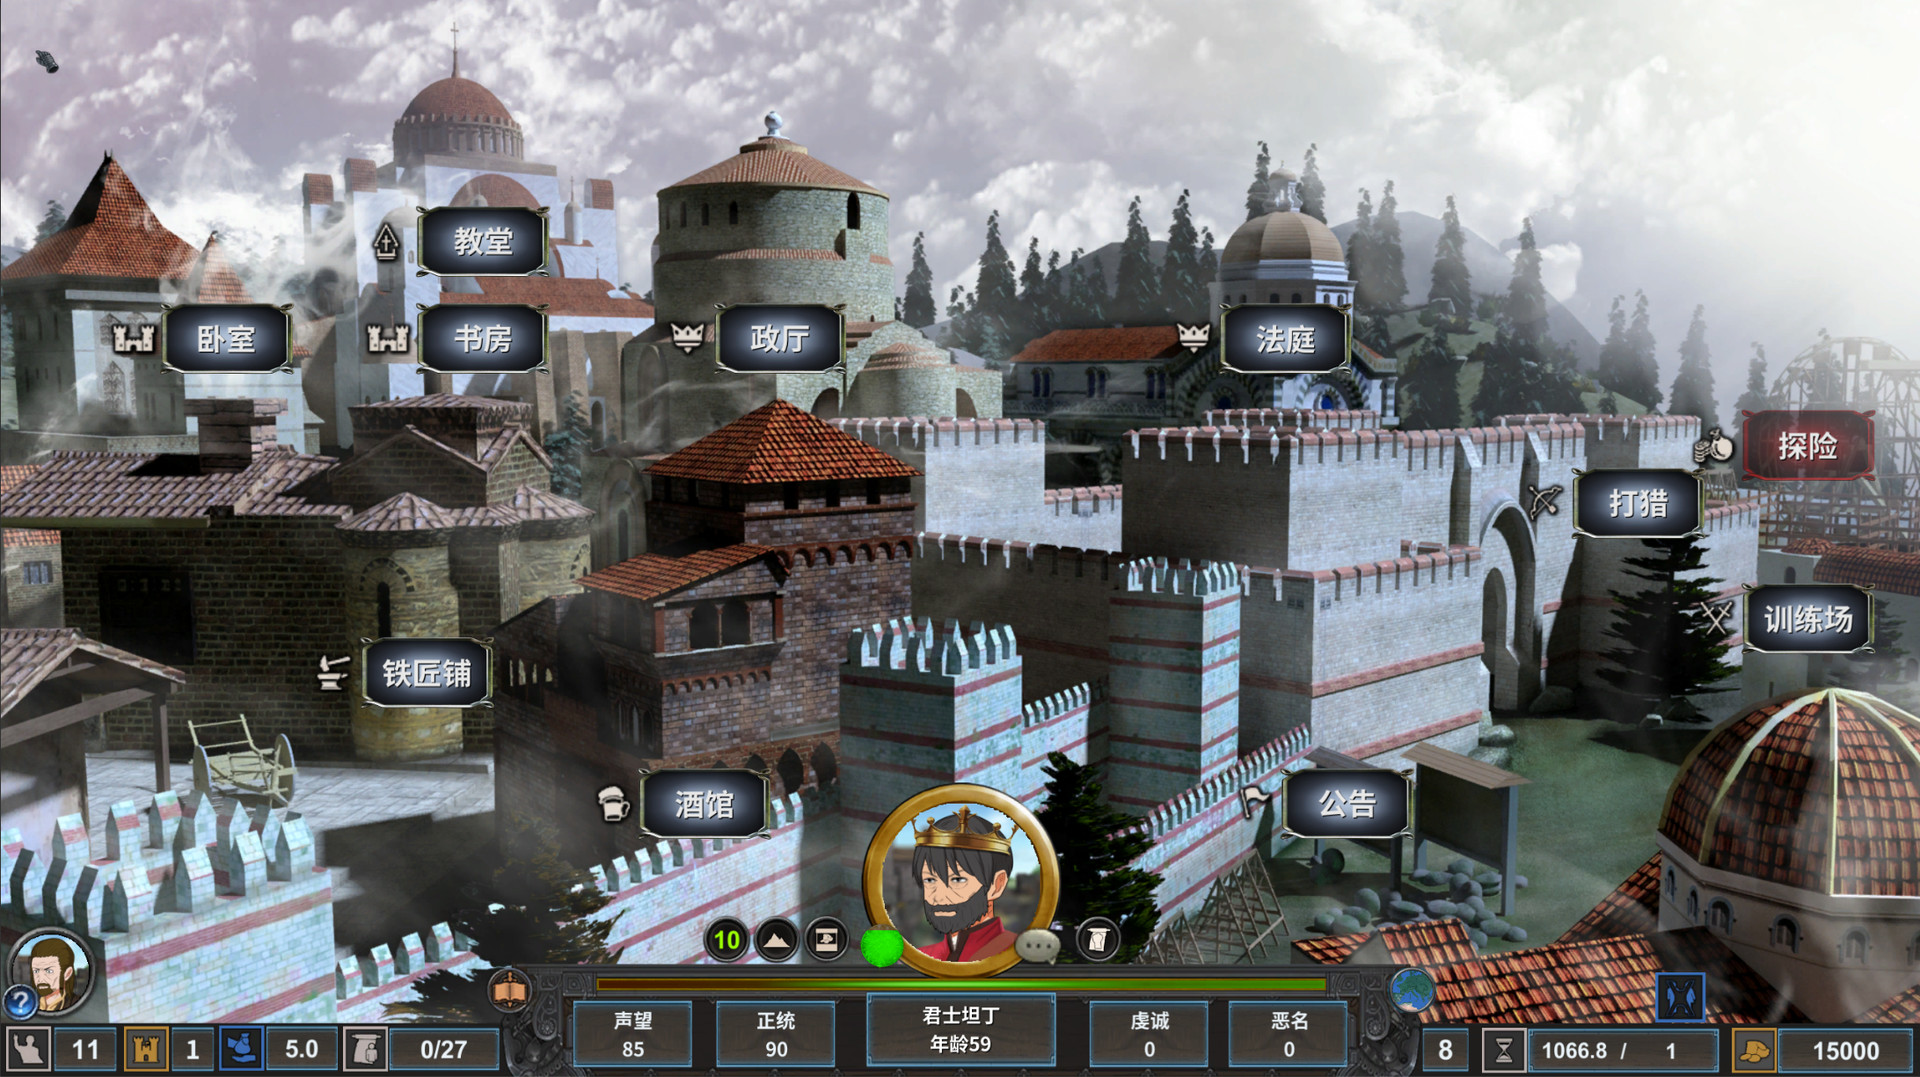 Find the best gaming PC for 中世纪君主 Medieval Monarch